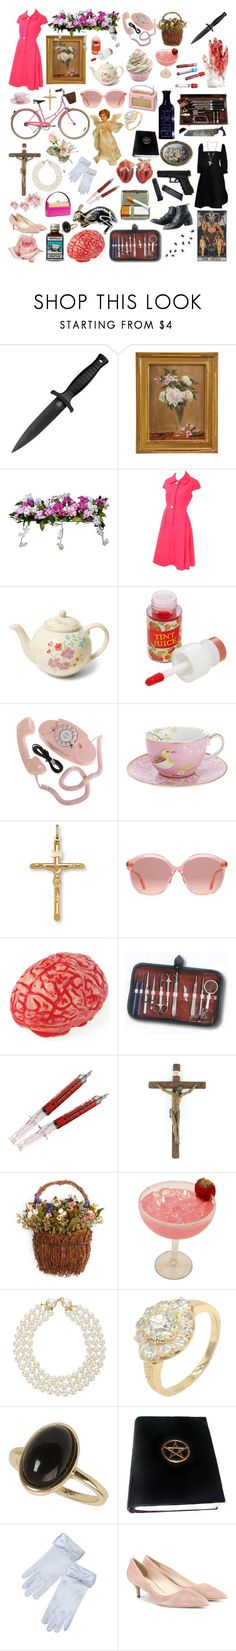 """preacher's wife"" by clownbunny ❤ liked on Polyvore featuring H.R., Tokyo Rose, Improvements, Geoffrey Beene, Liberty, Skinfood, PiP Studio, Gucci, Zone and Lab"